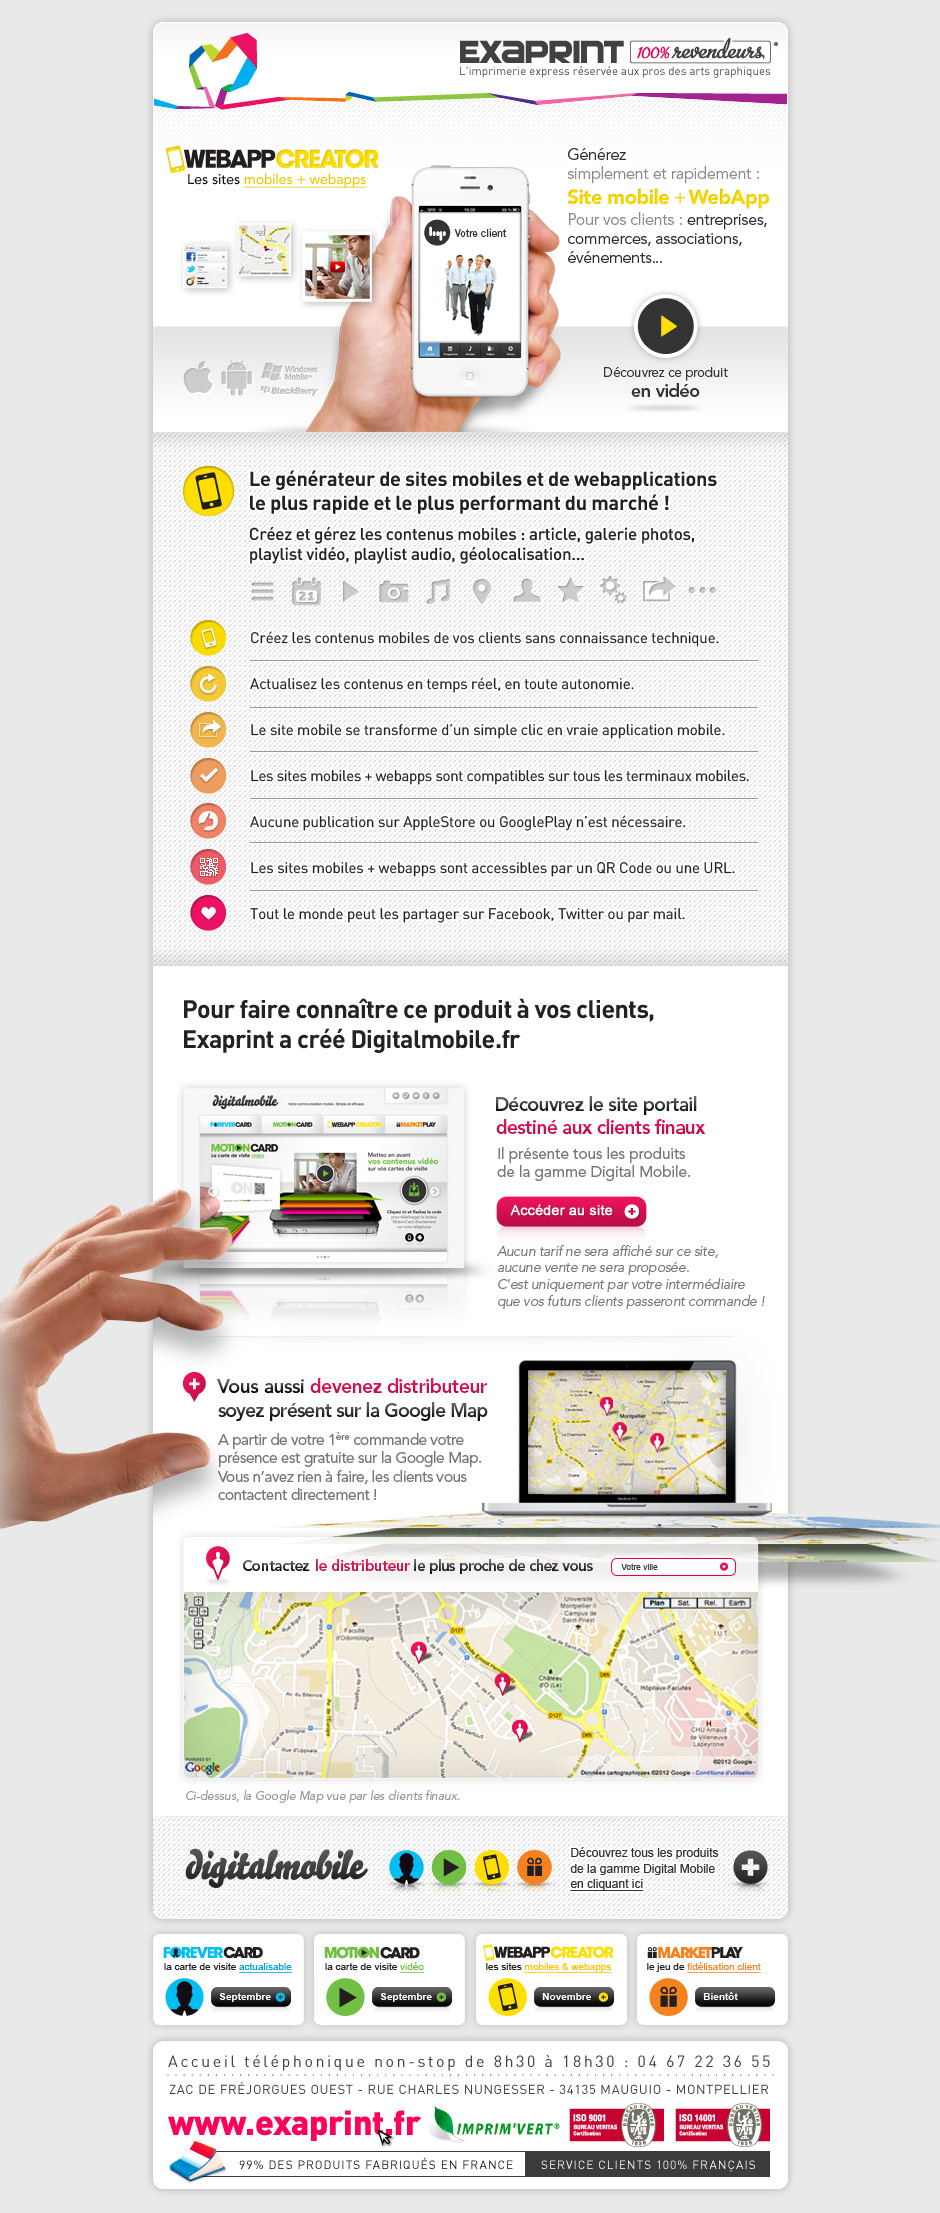 graphiste-montpellier-creation-exaprint-webappcreator-agence-communication-montpellier-caconcept-alexis-cretin-3